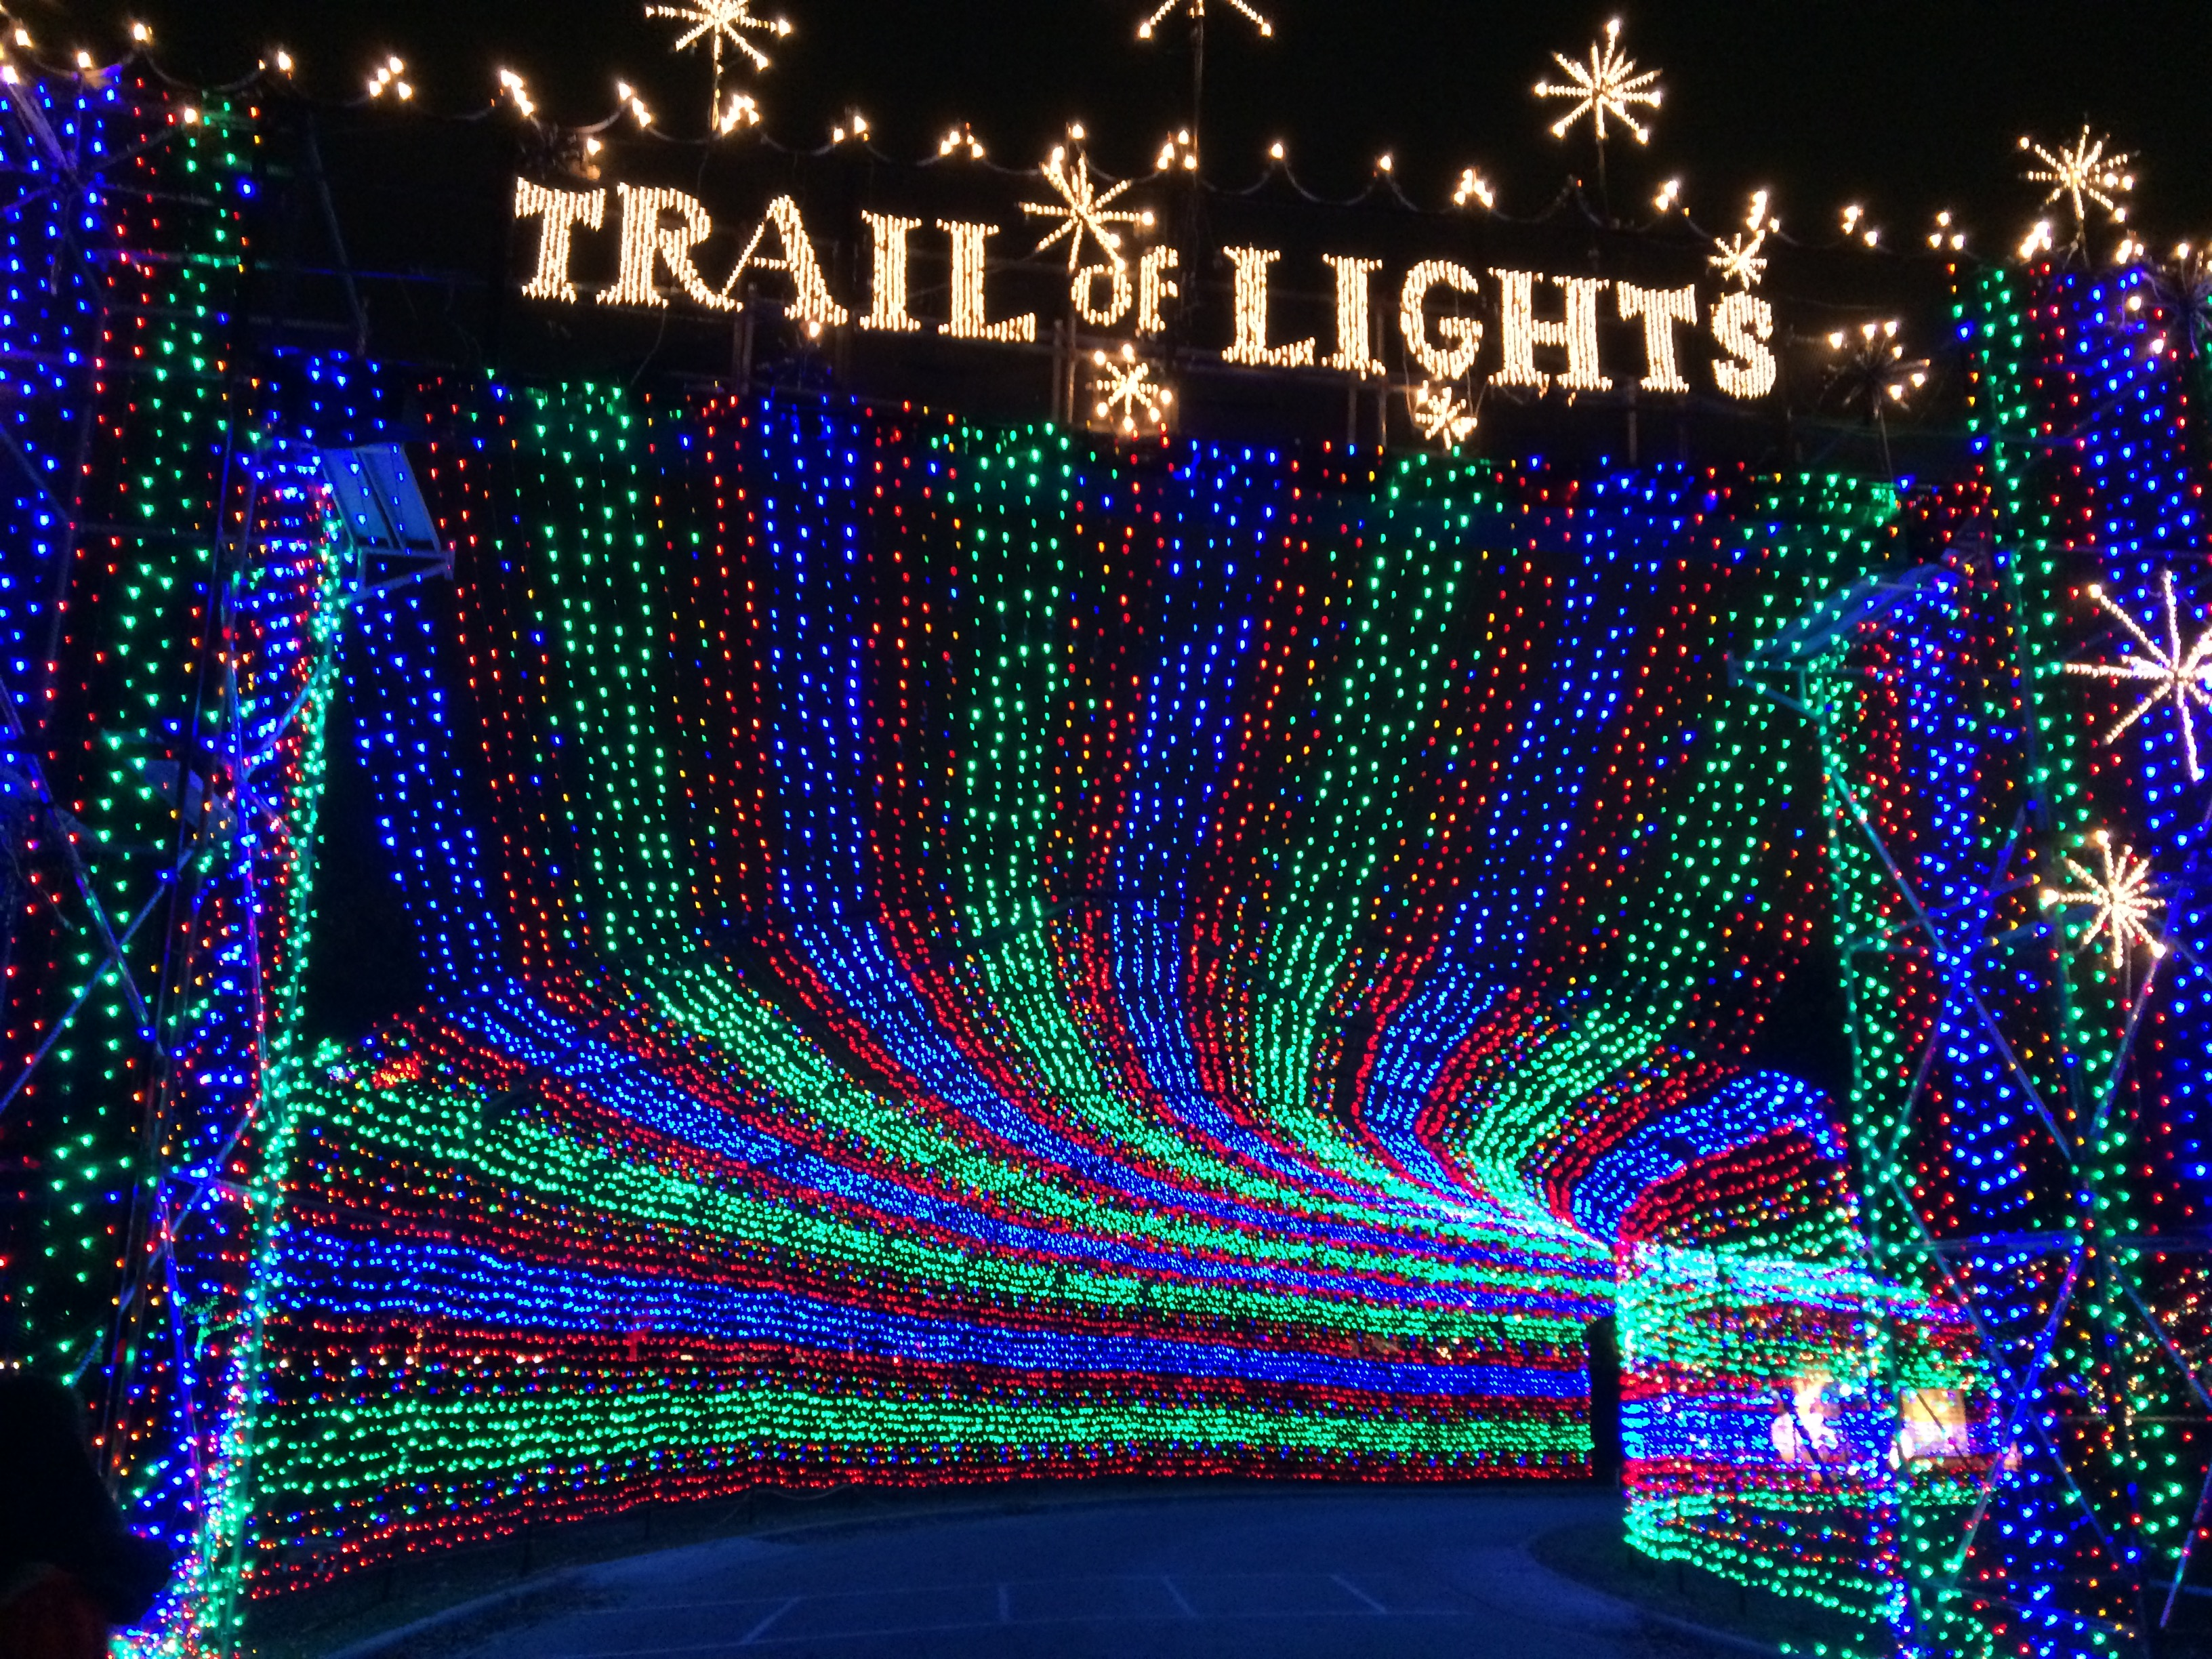 Trail of Lights at Zilker Park